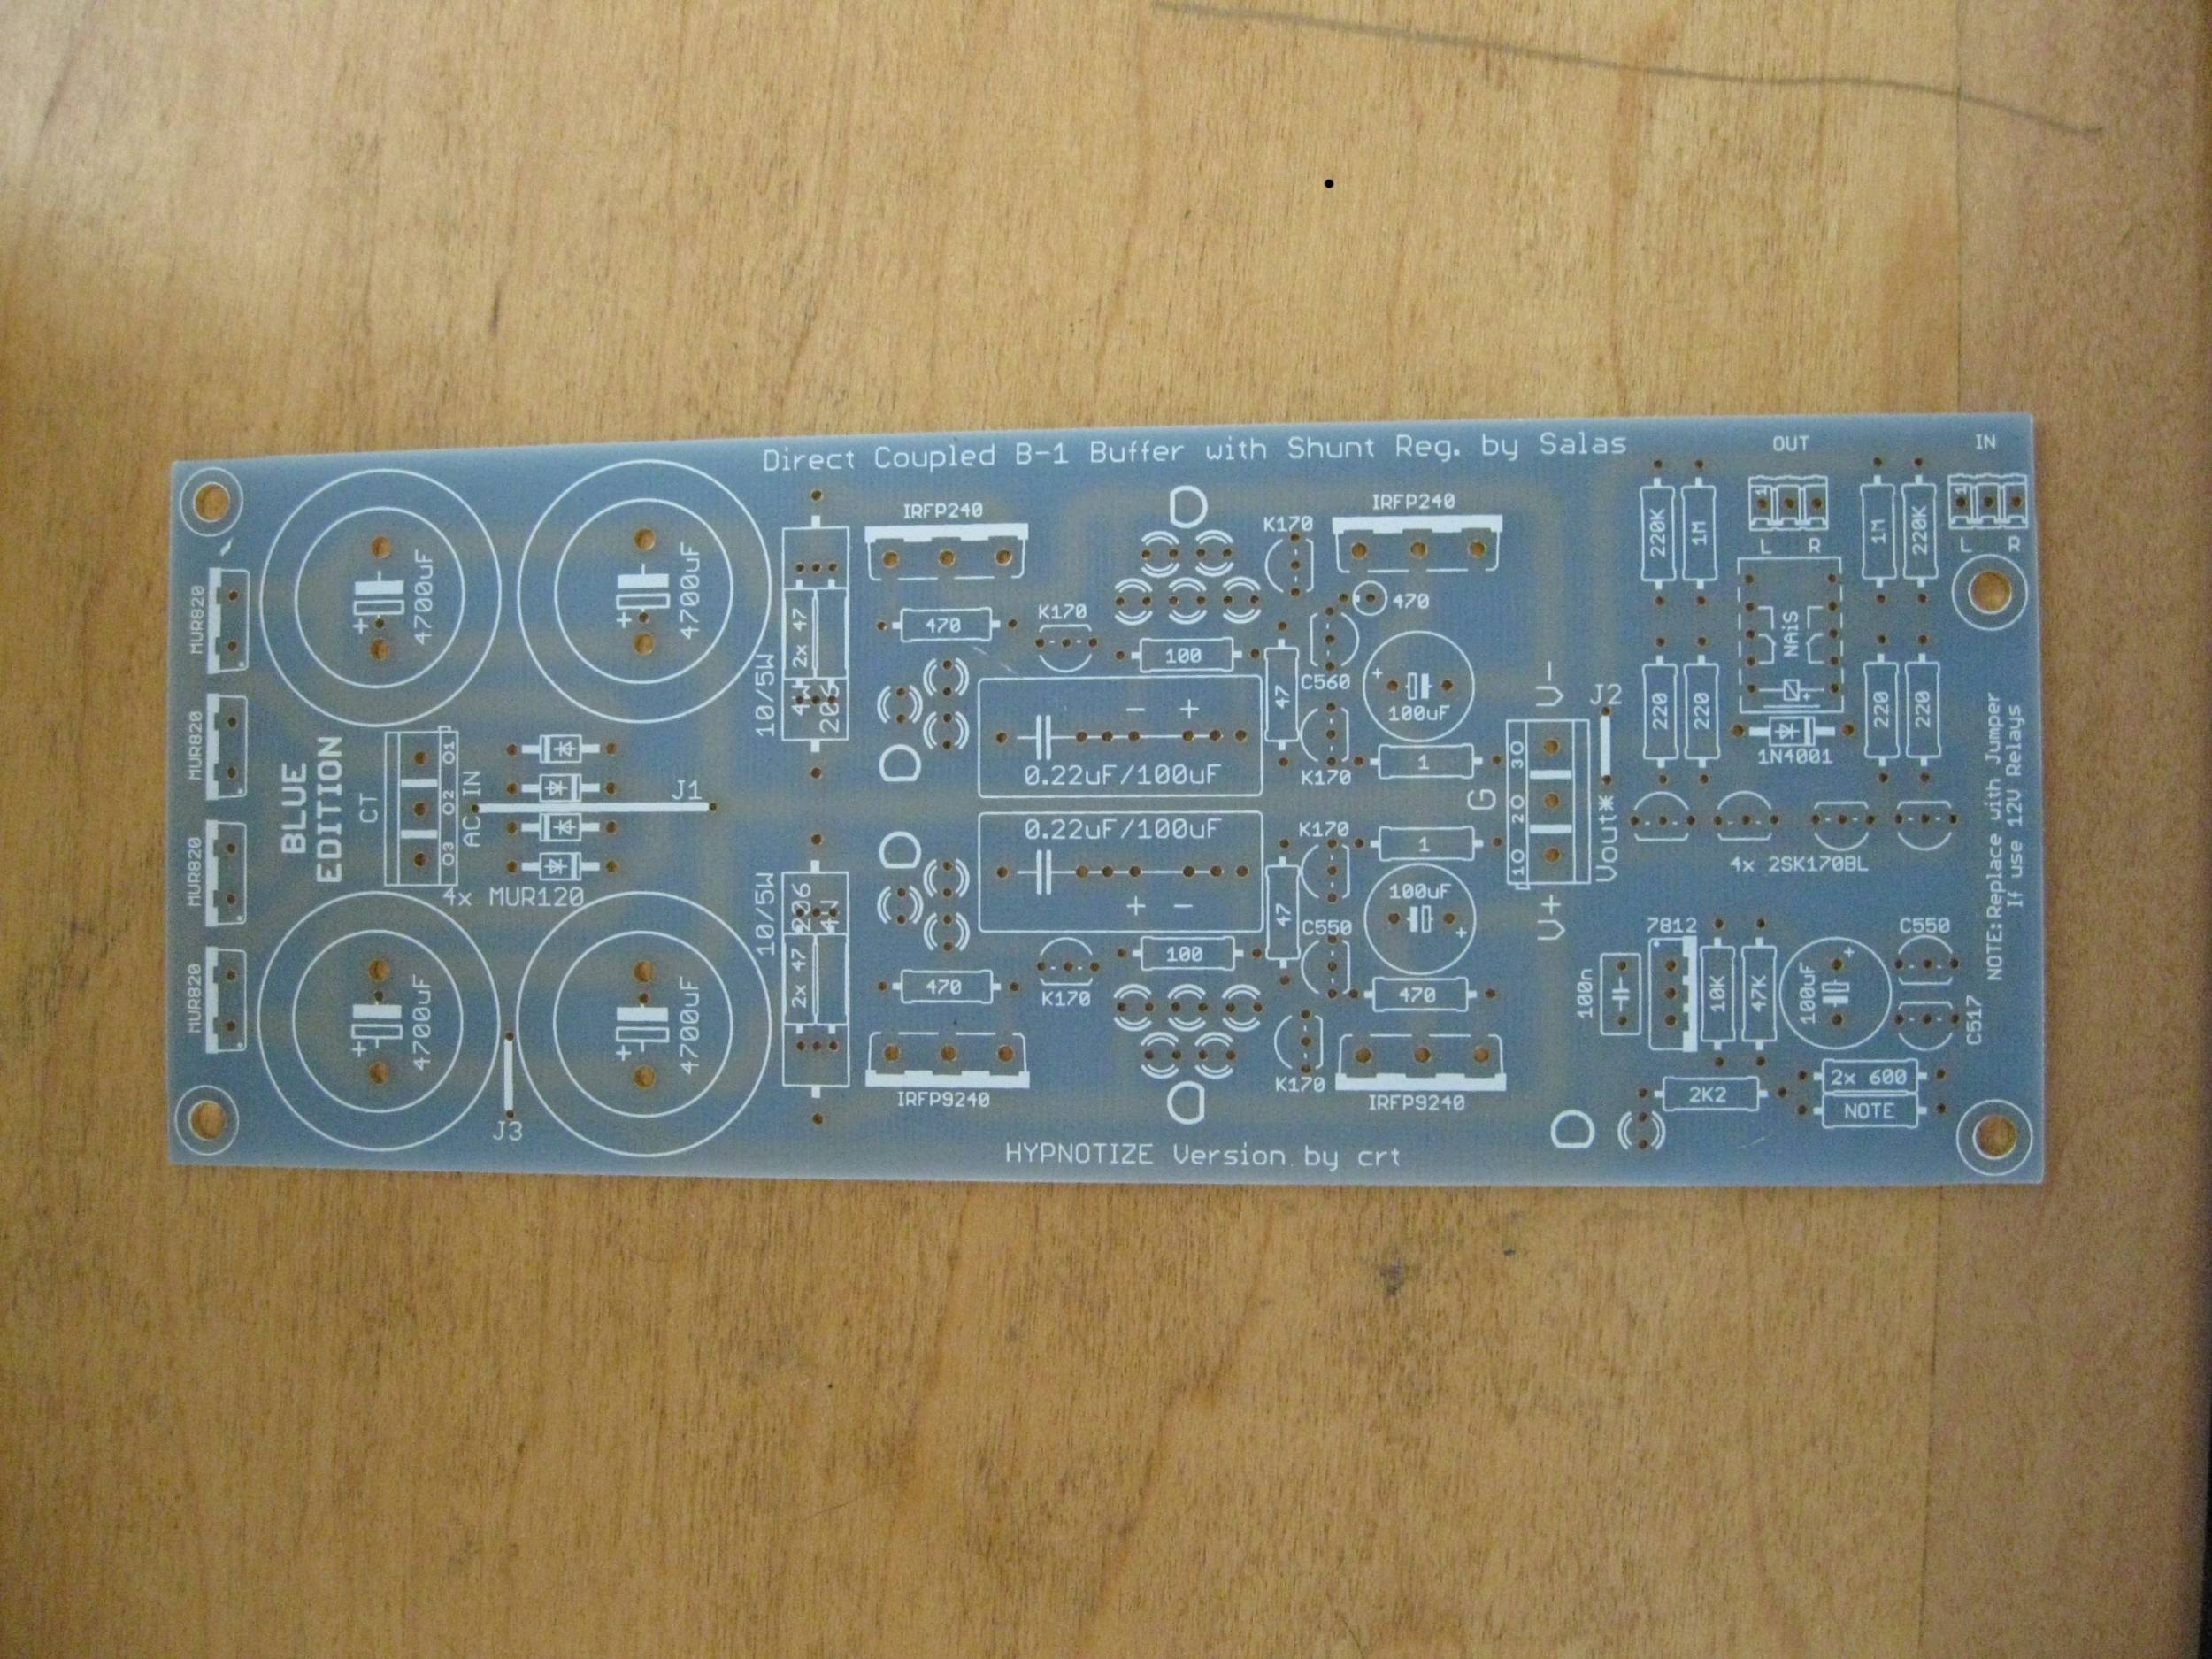 blueboard_no_soldermask_white_material